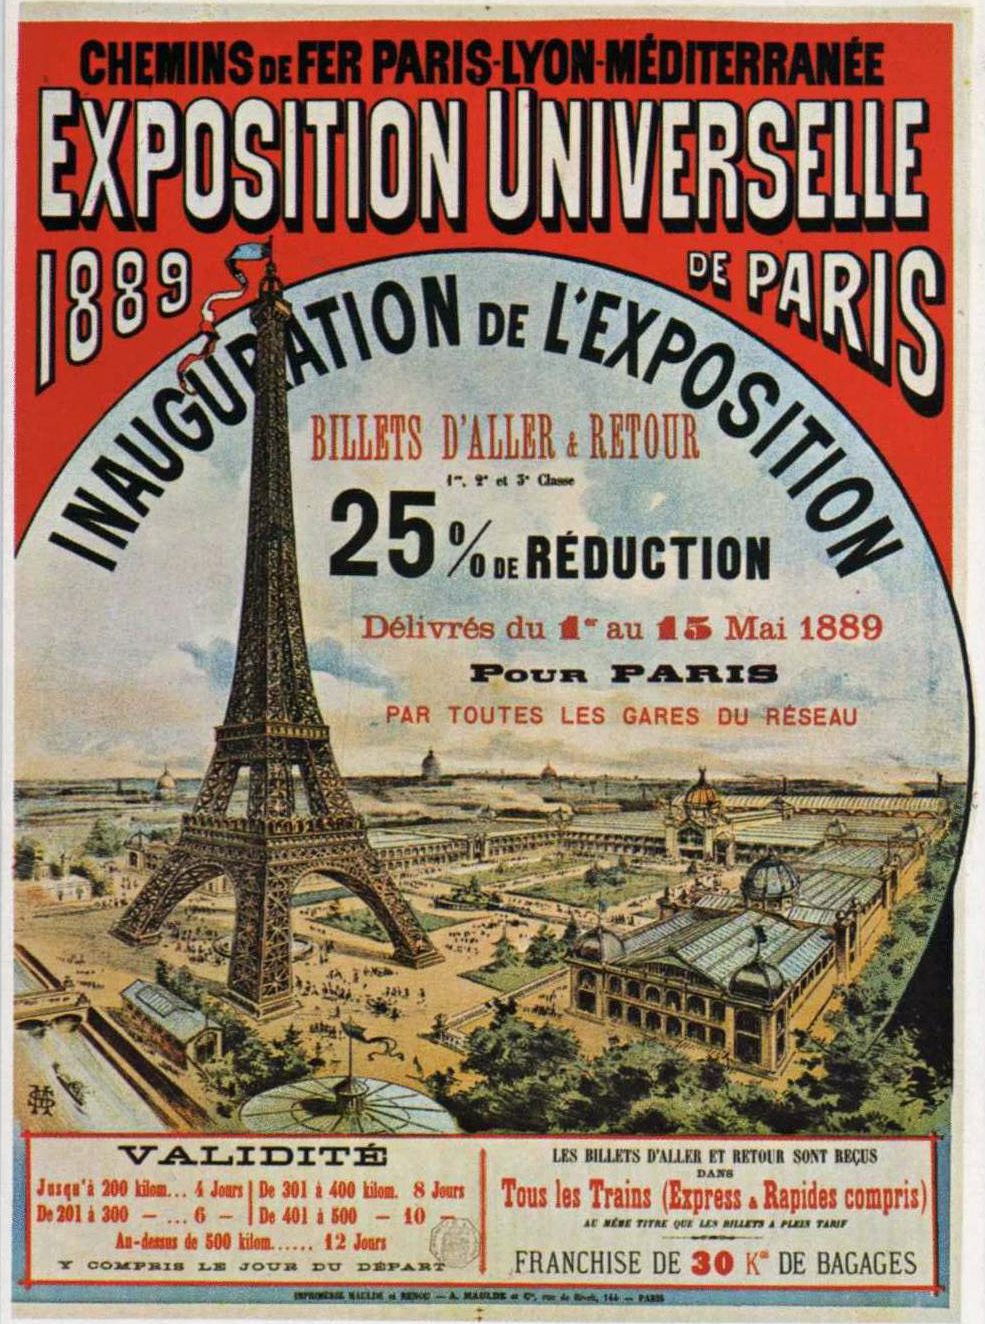 Poster for Exposition Univesalle de Paris, 1889. Courtesy of Wikimedia.